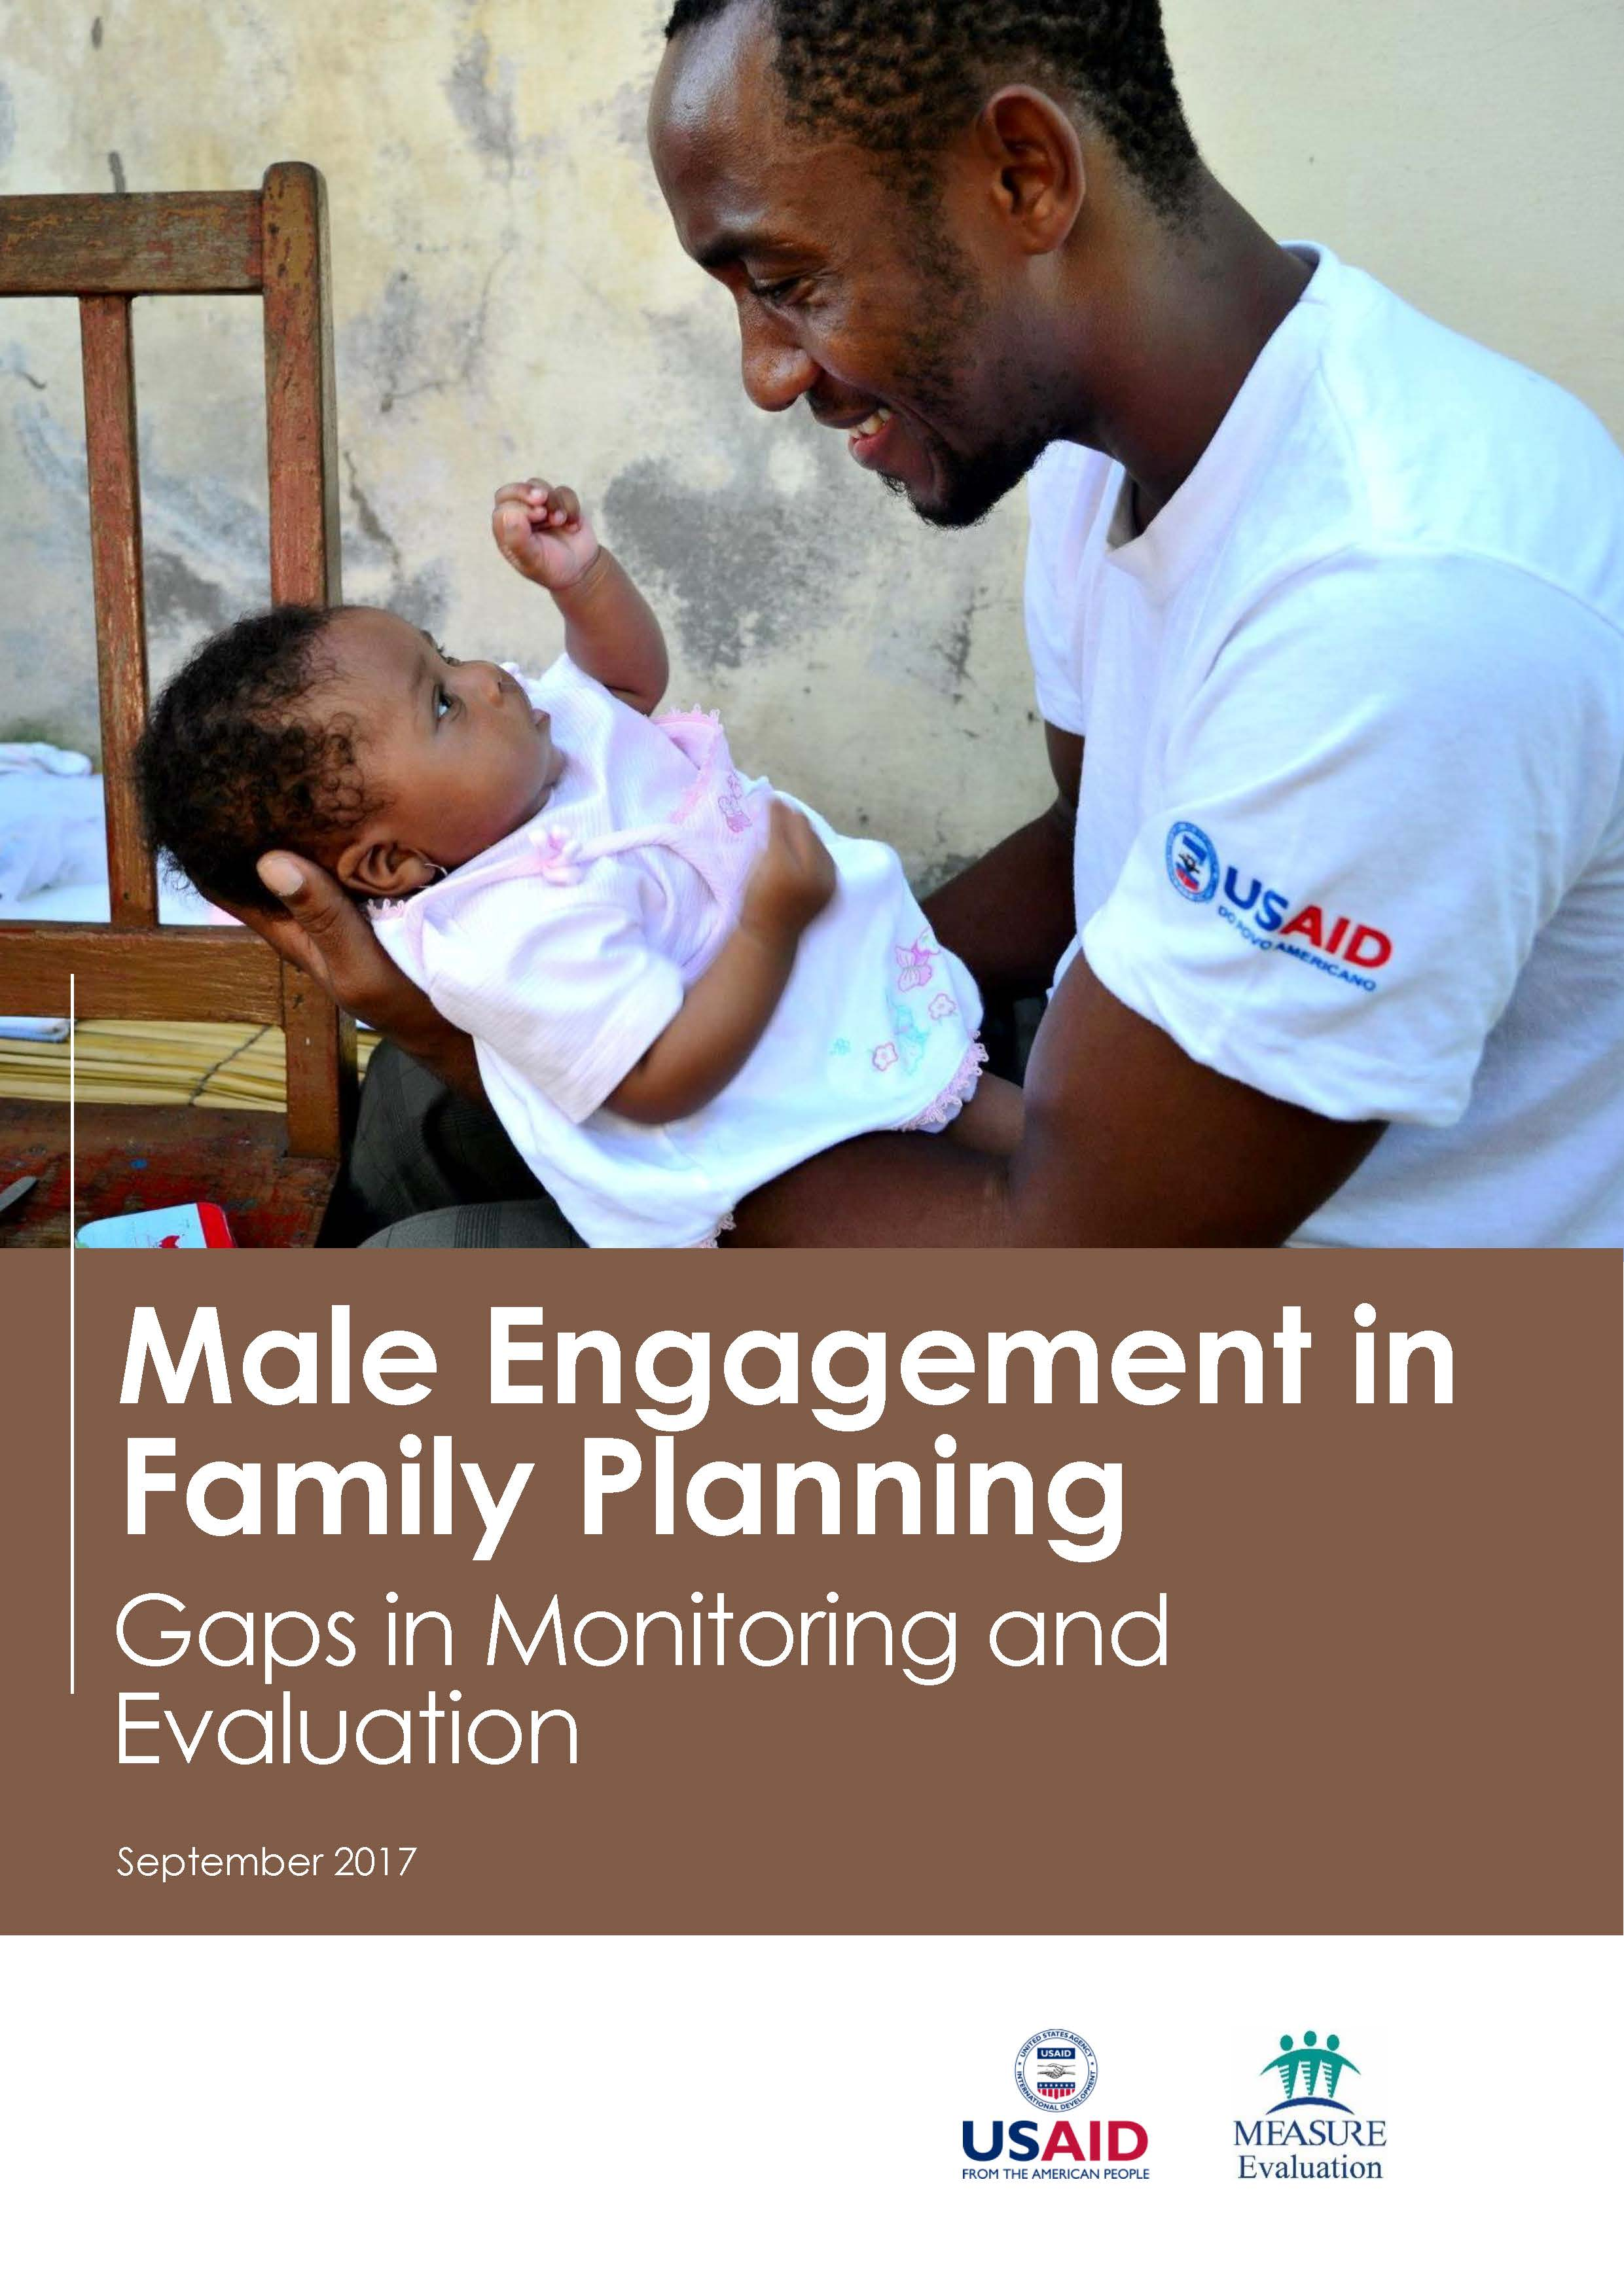 Male Engagement in Family Planning: Gaps in Monitoring and Evaluation